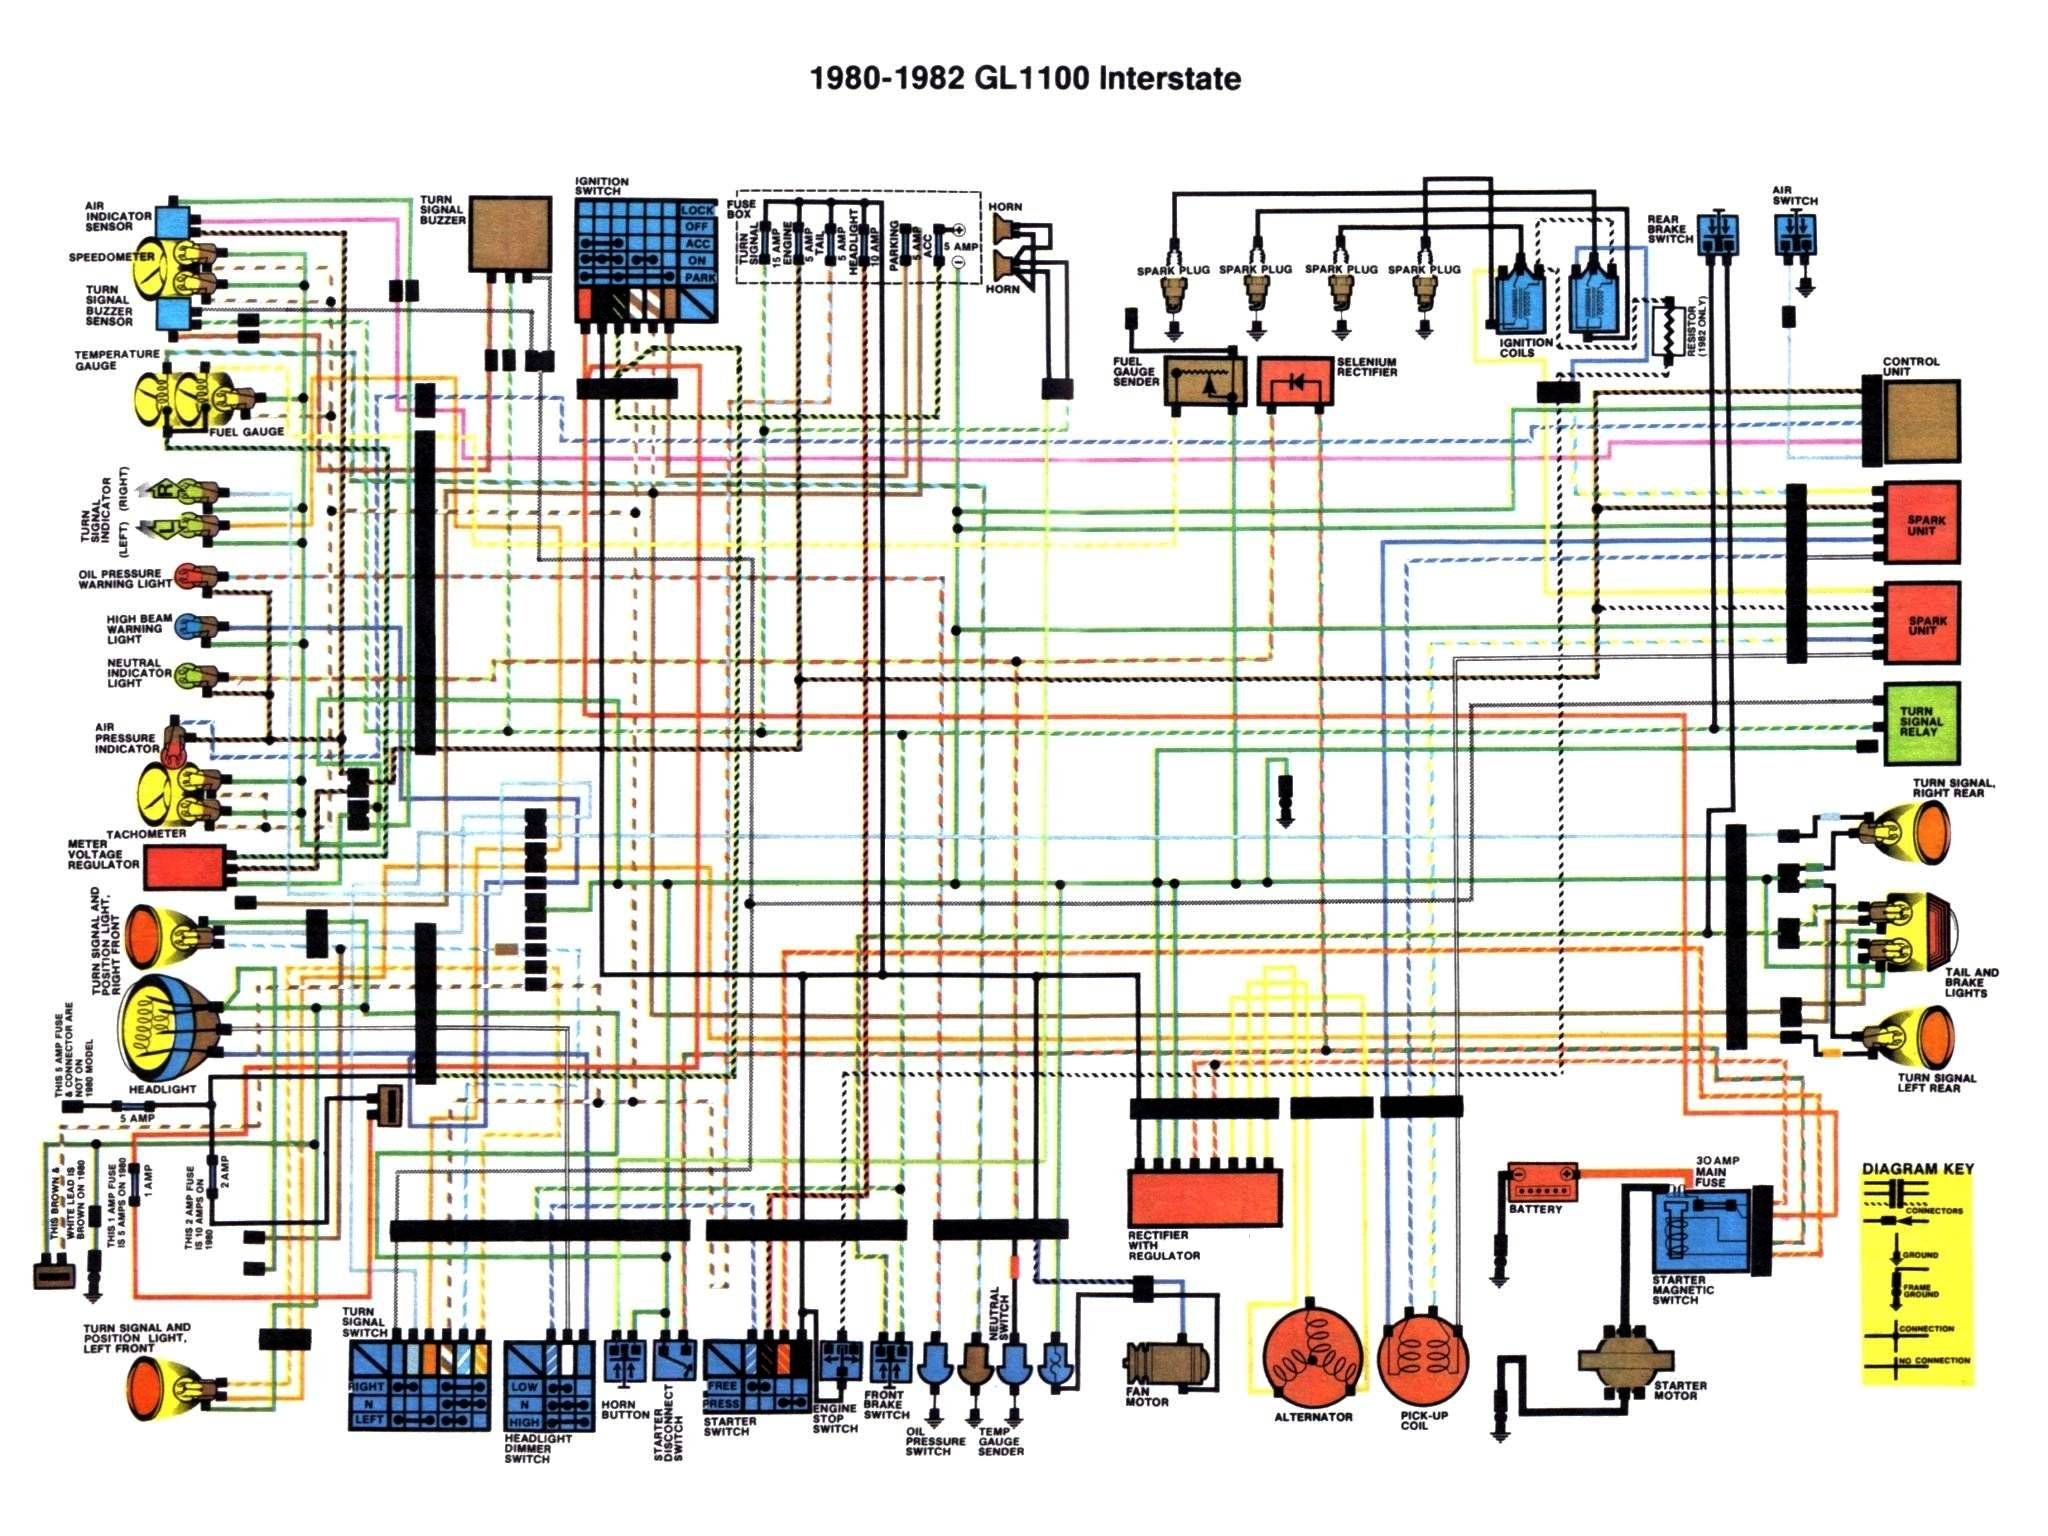 83 Gl1000 1 550 1978 Honda Cb550 Wiring Diagram Comments